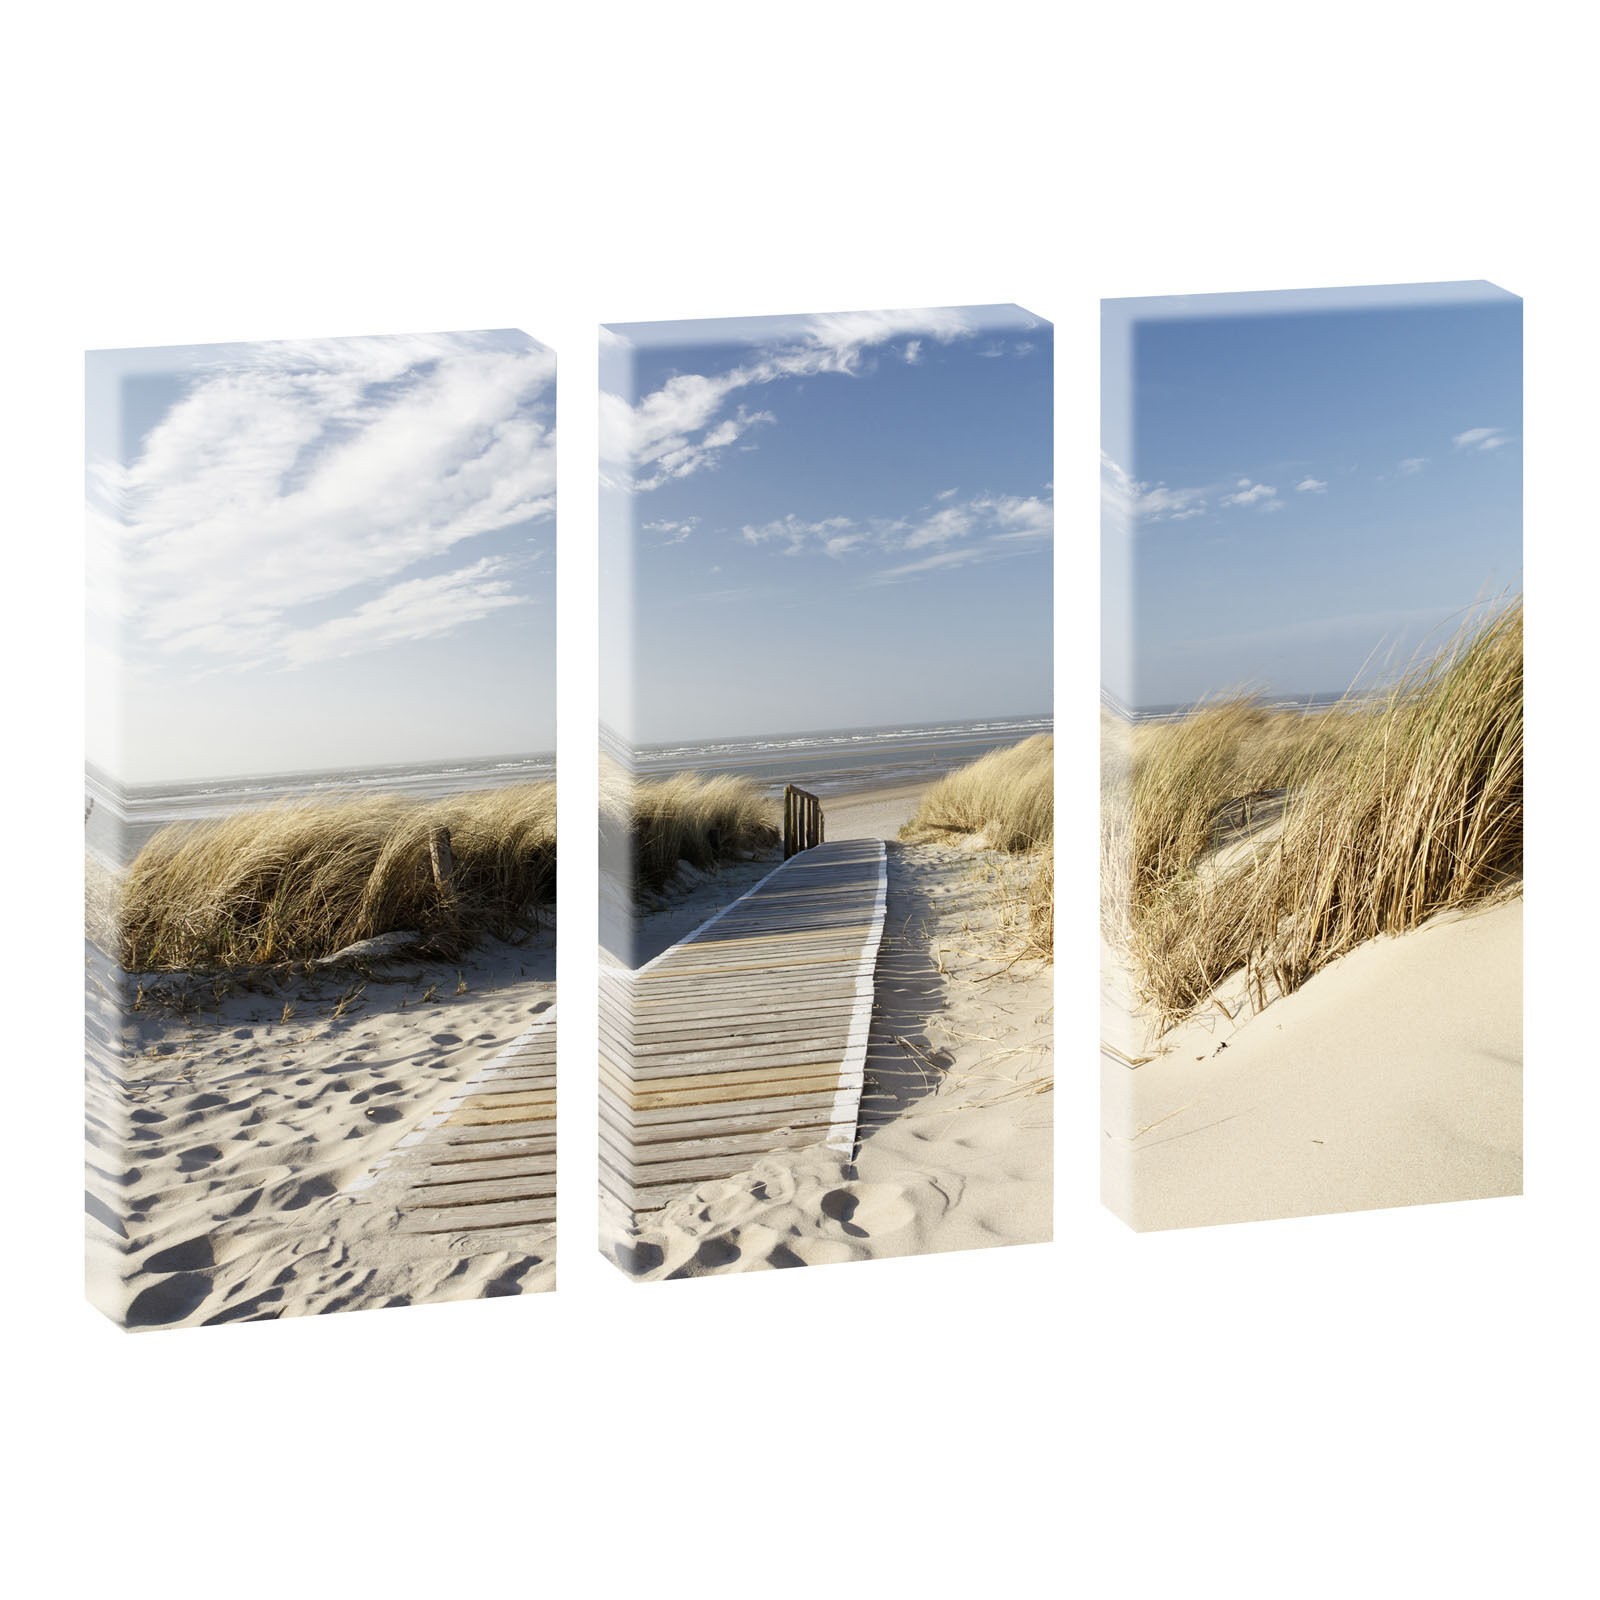 3 bilder poster keilrahmen leinwand strand meer nordsee langeoog 3 40cm 80cm picclick de. Black Bedroom Furniture Sets. Home Design Ideas